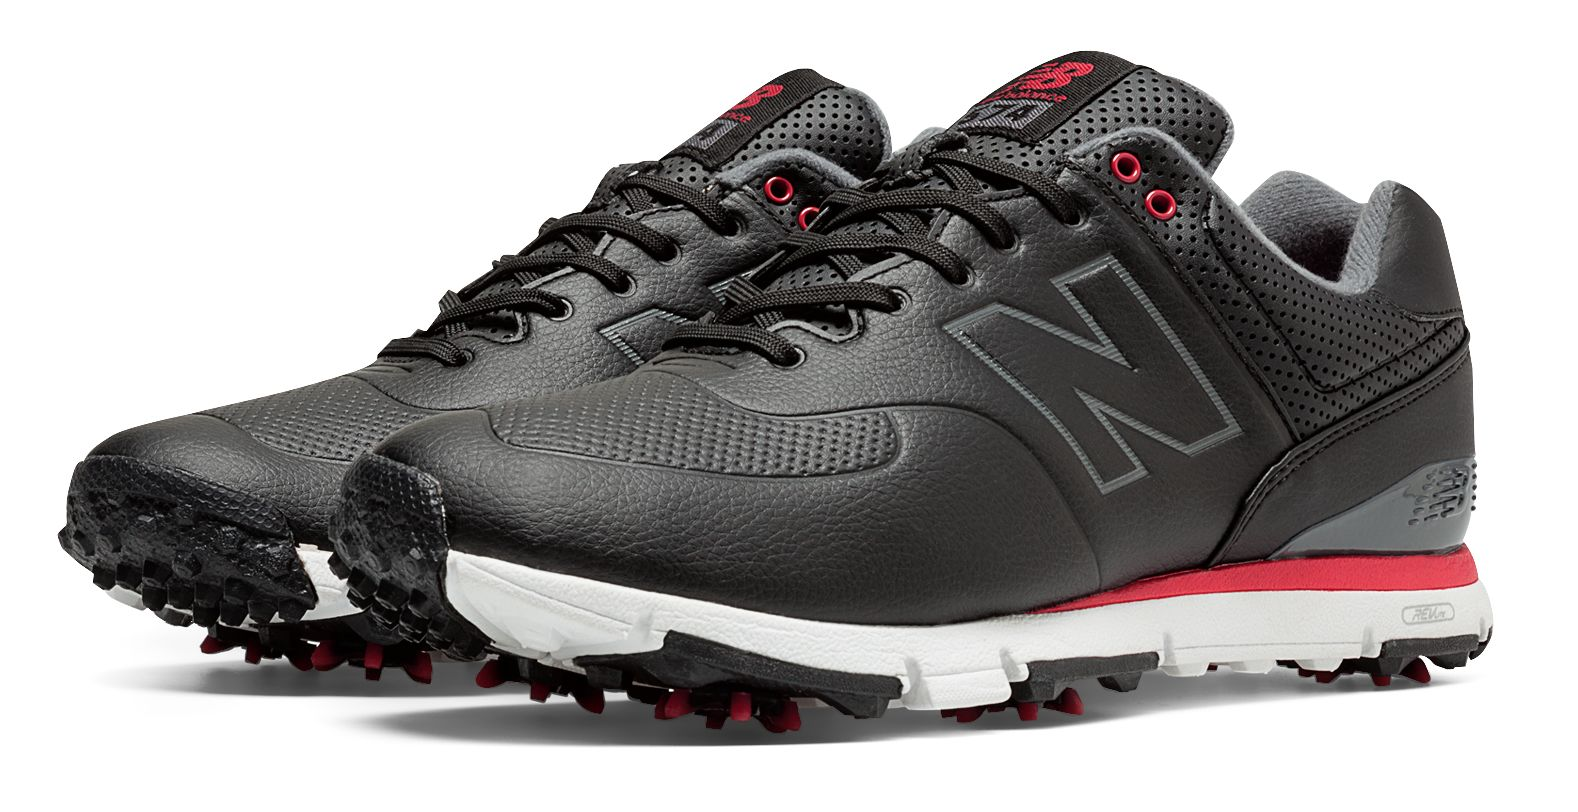 New Balance Golf Leather 574 Mens Shoes Black